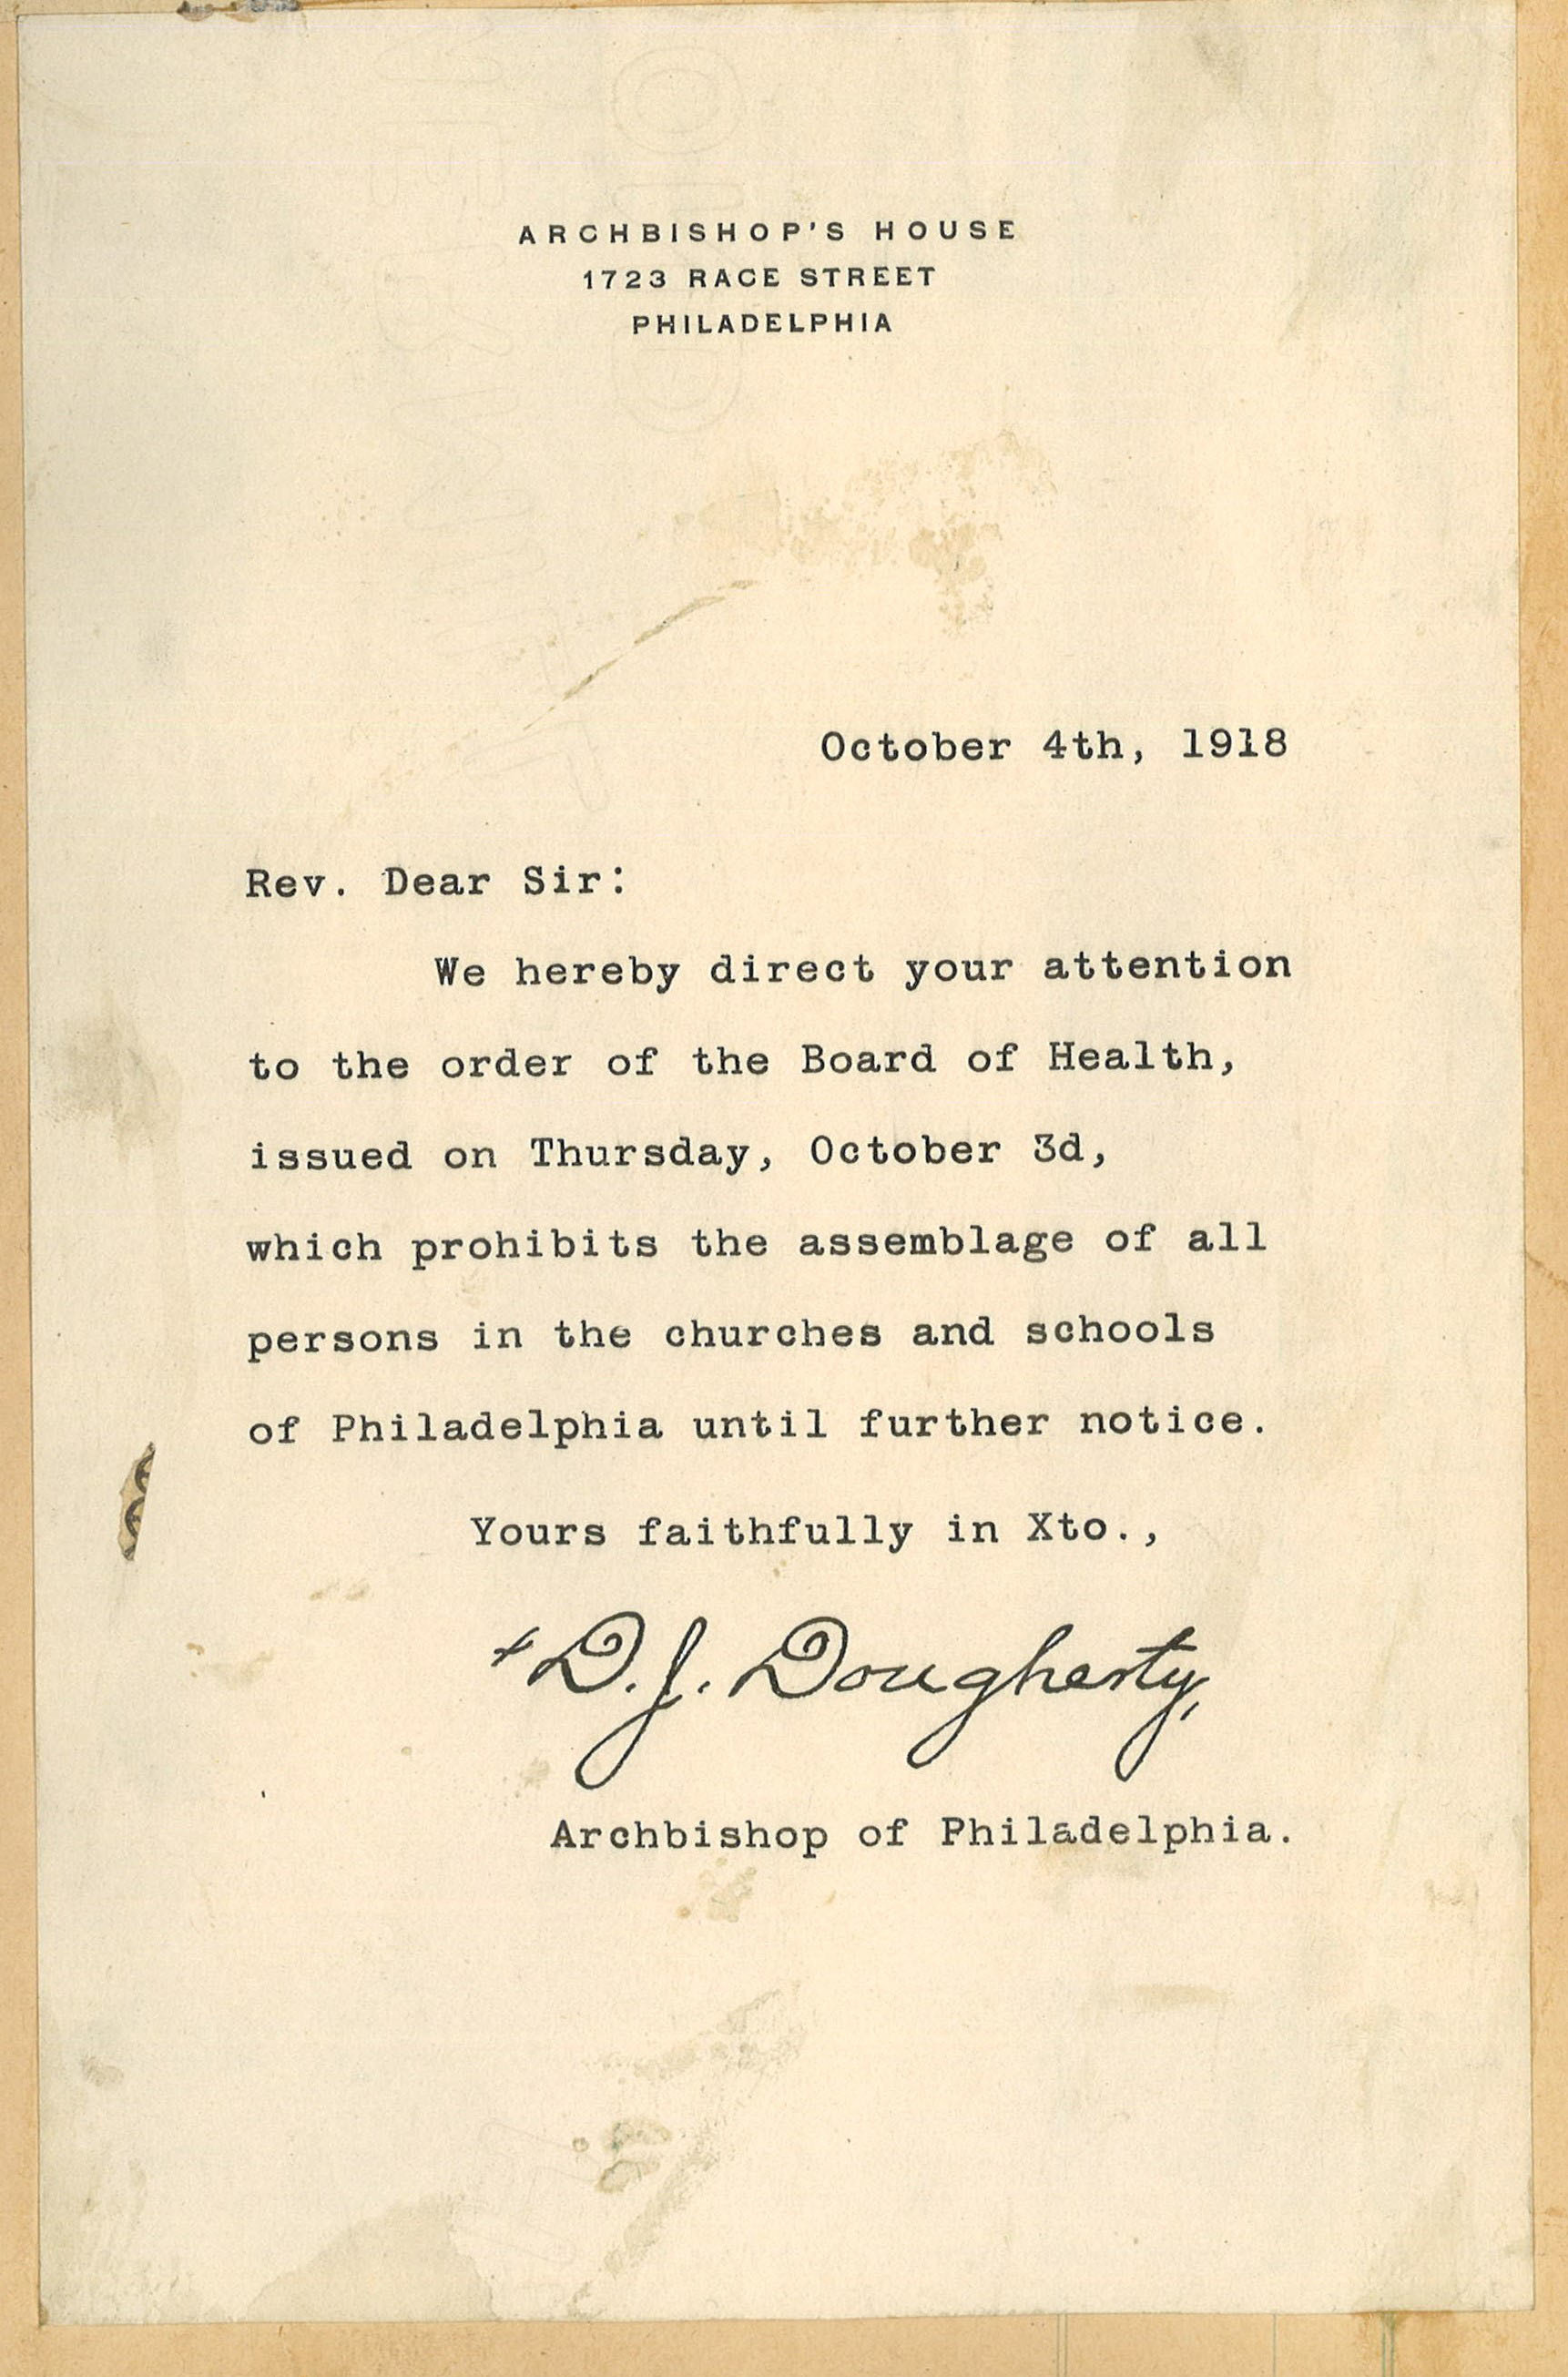 Letter from Dougherty dated October 4, 1918